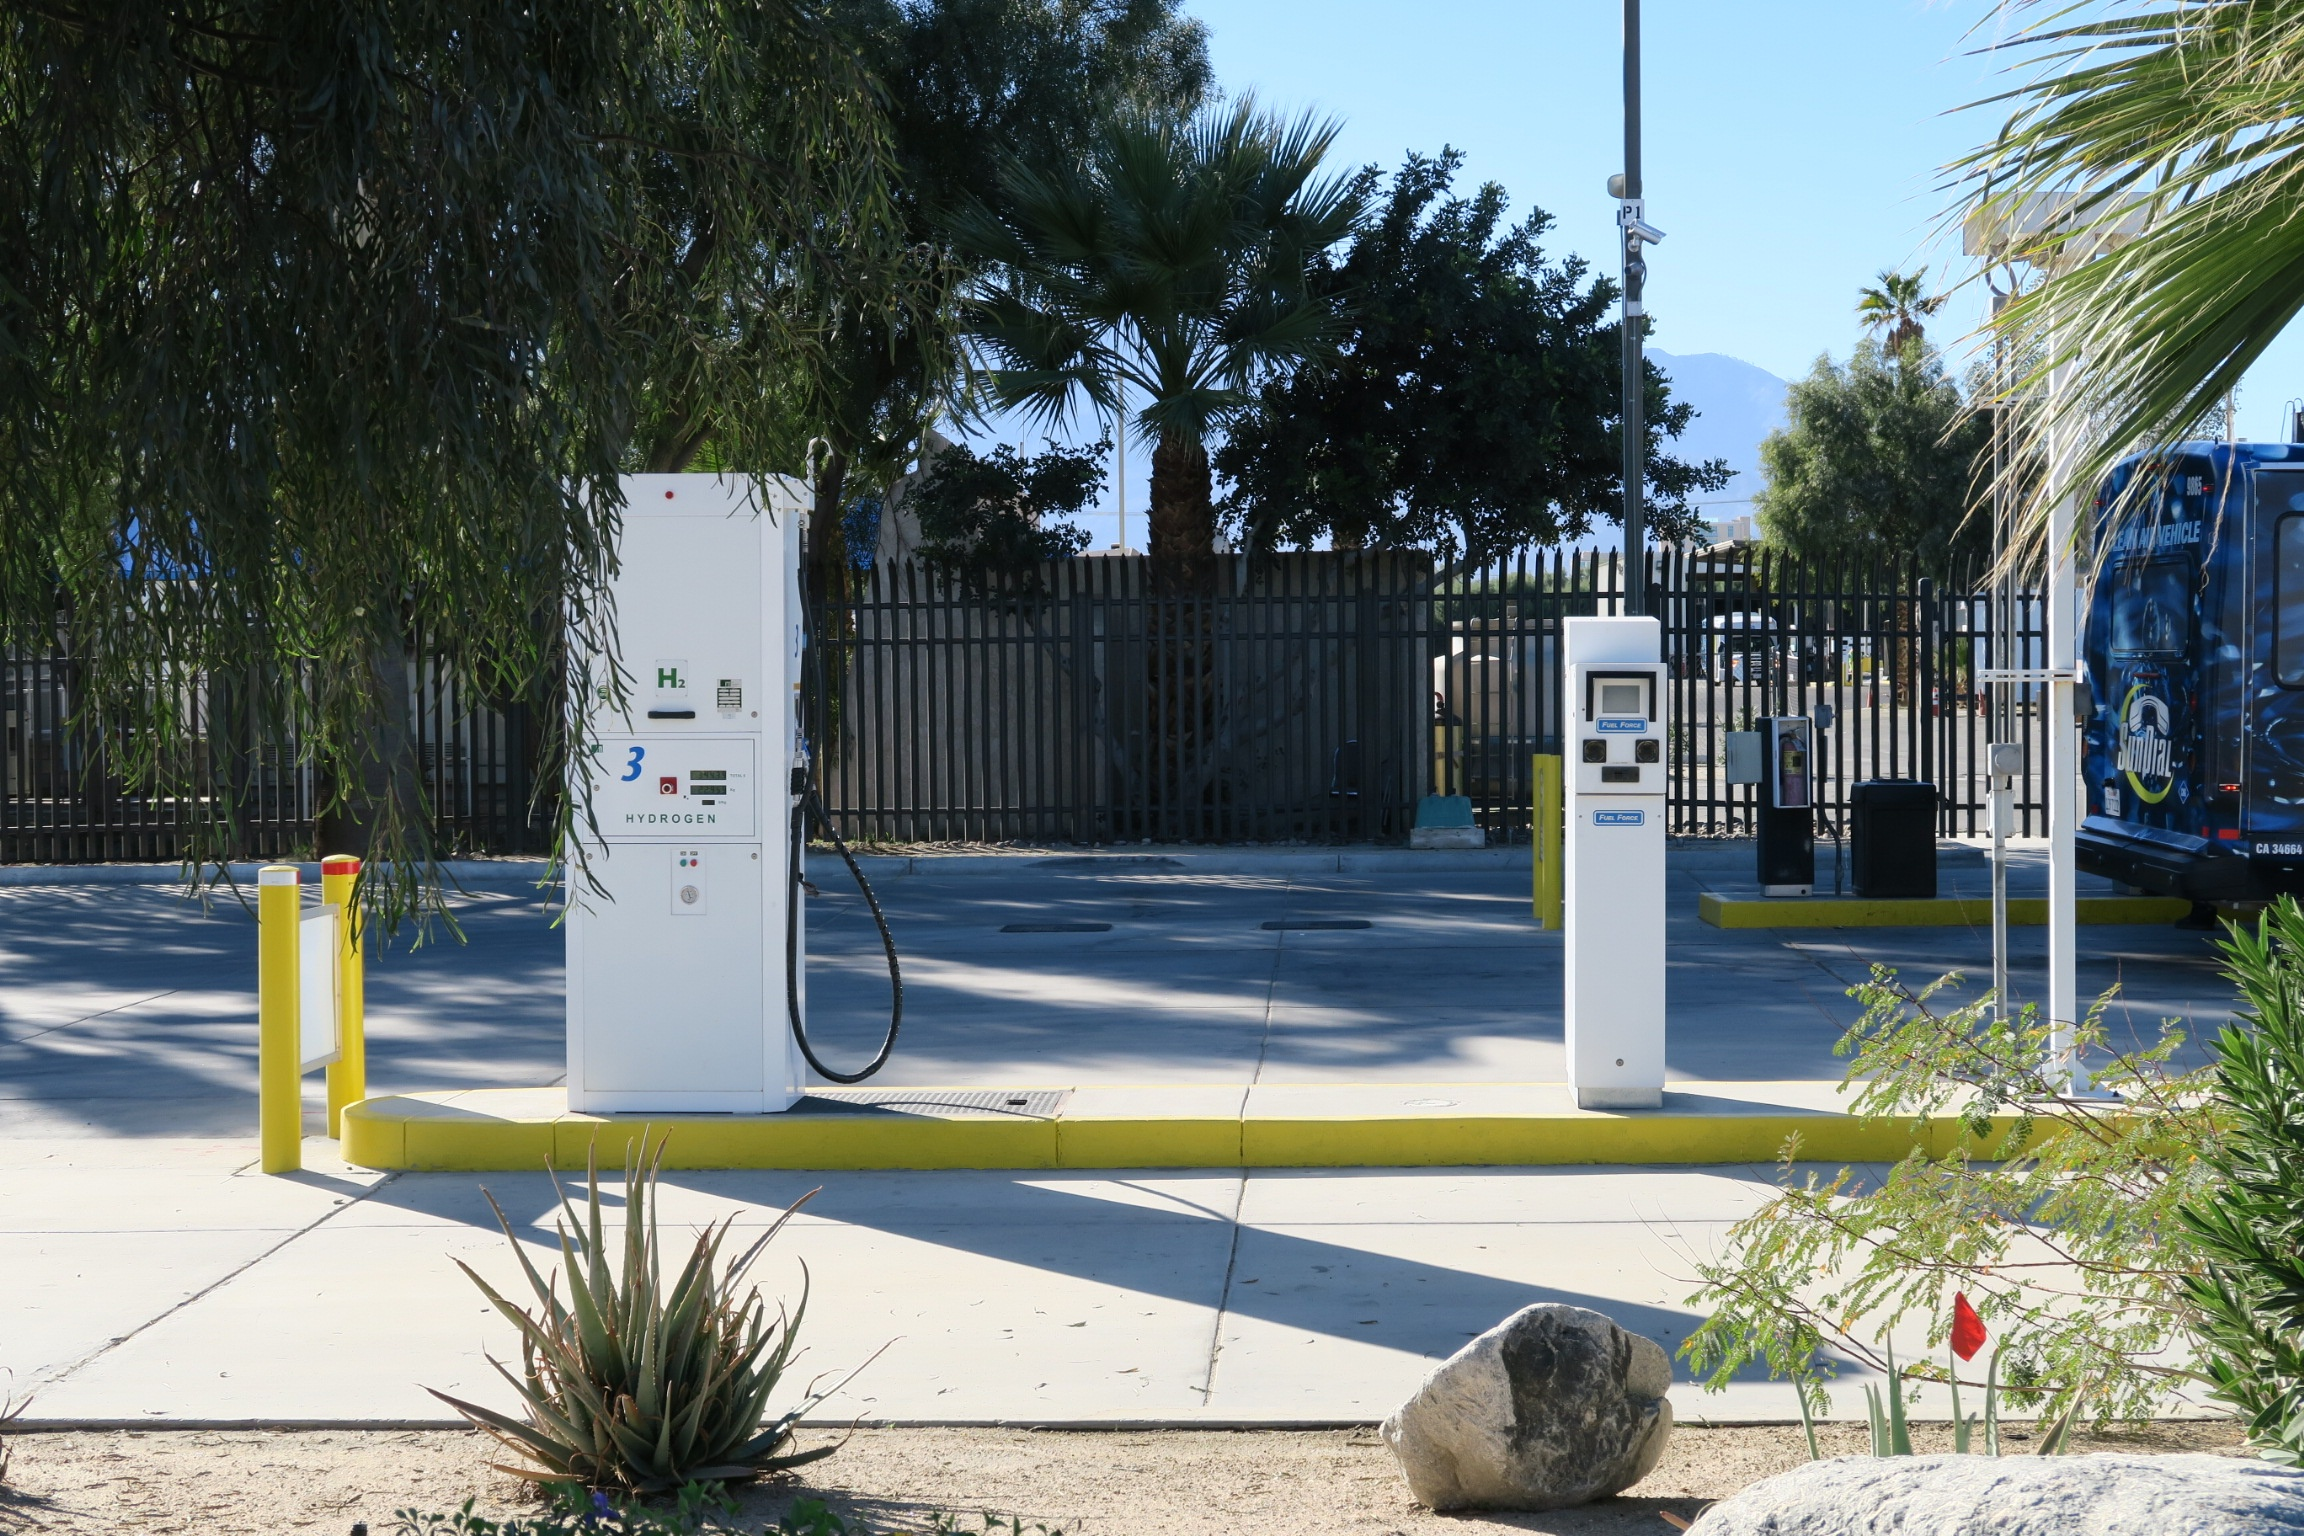 hydrogen-fueling-station-sunline-facilities-california.jpg